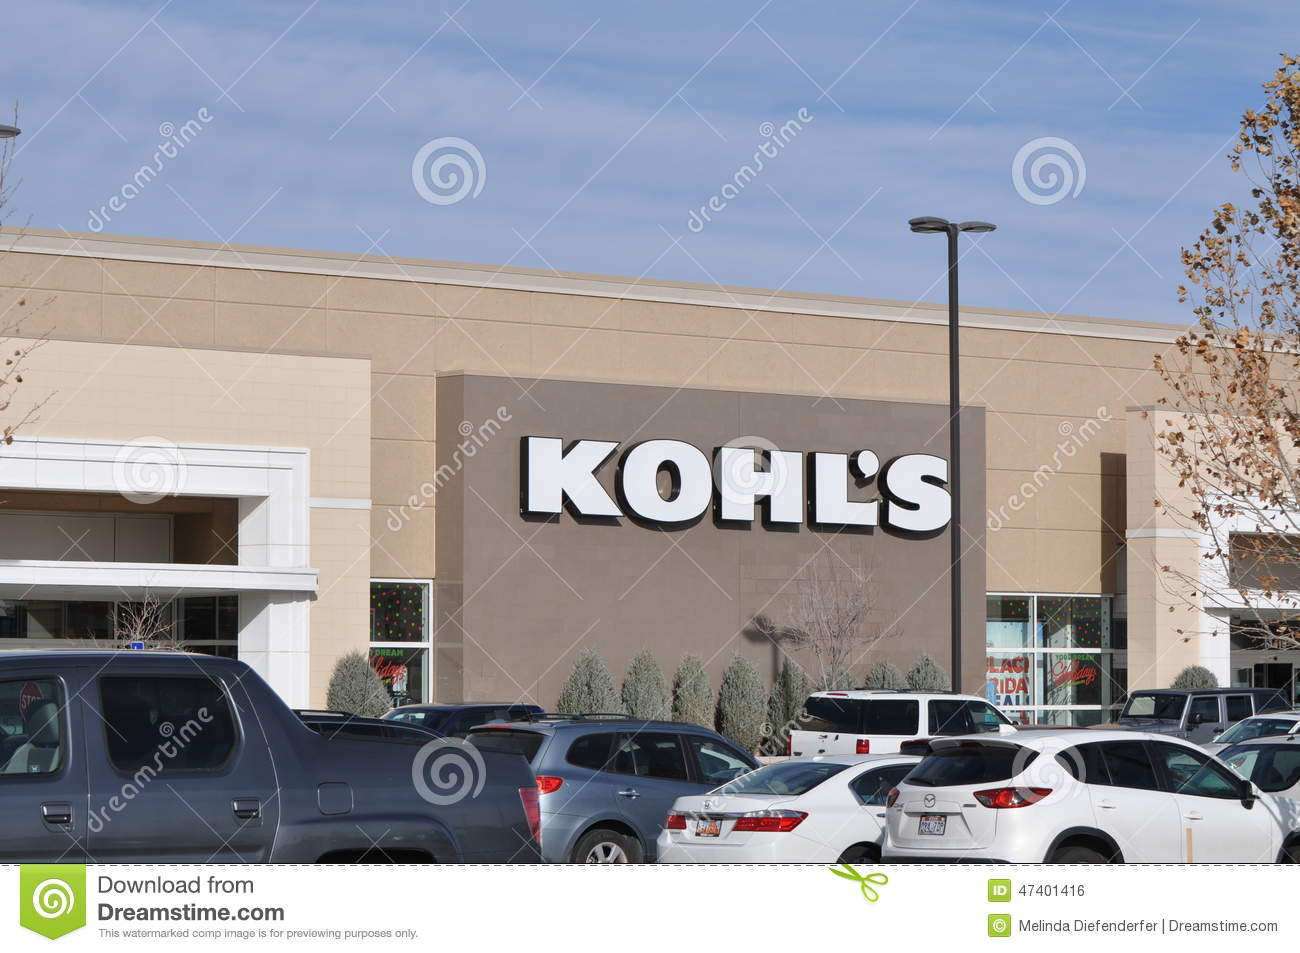 Call kohls clothing store